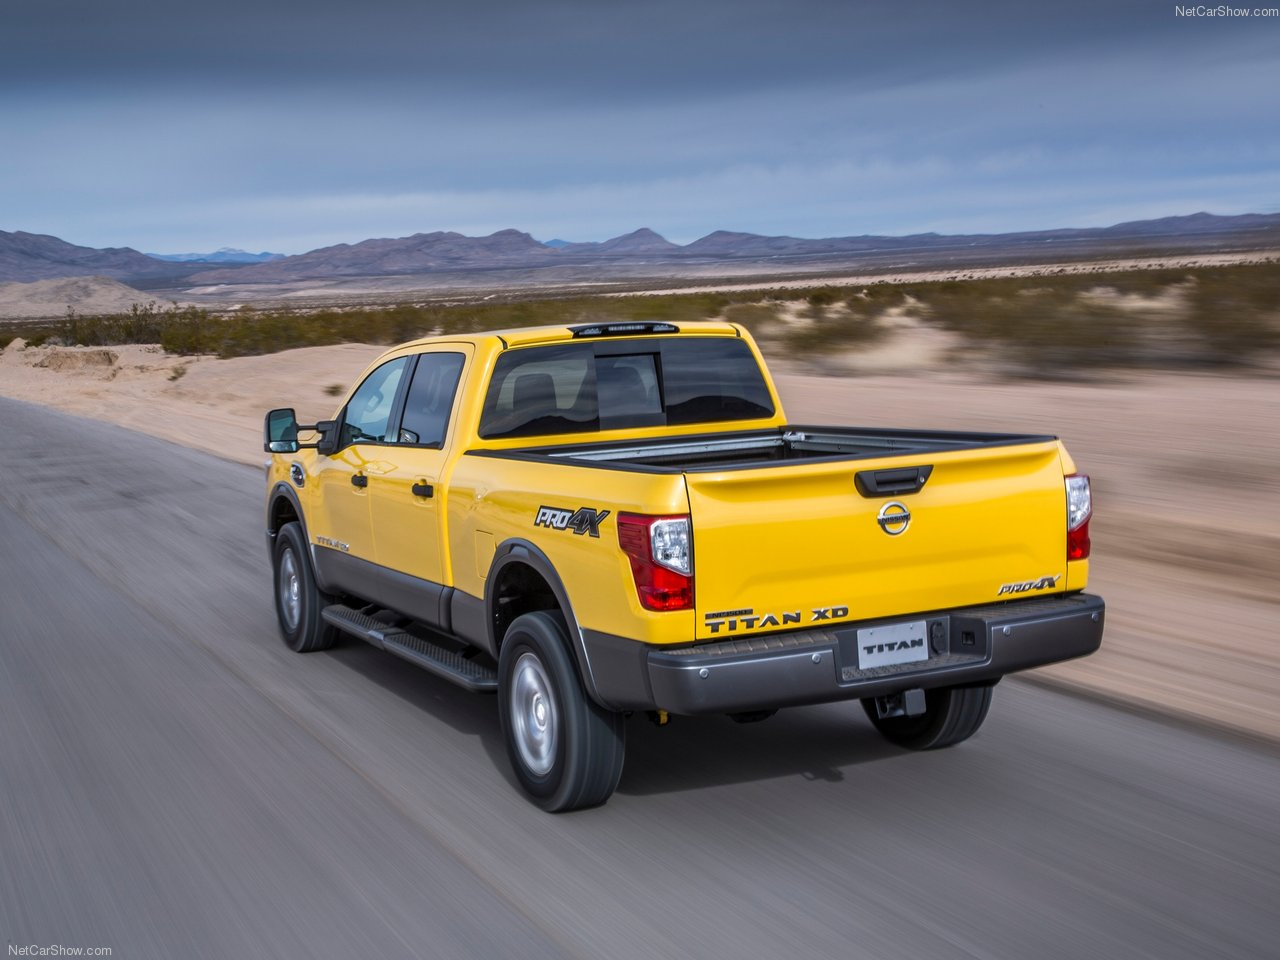 Nissan Titan XD photo 141357